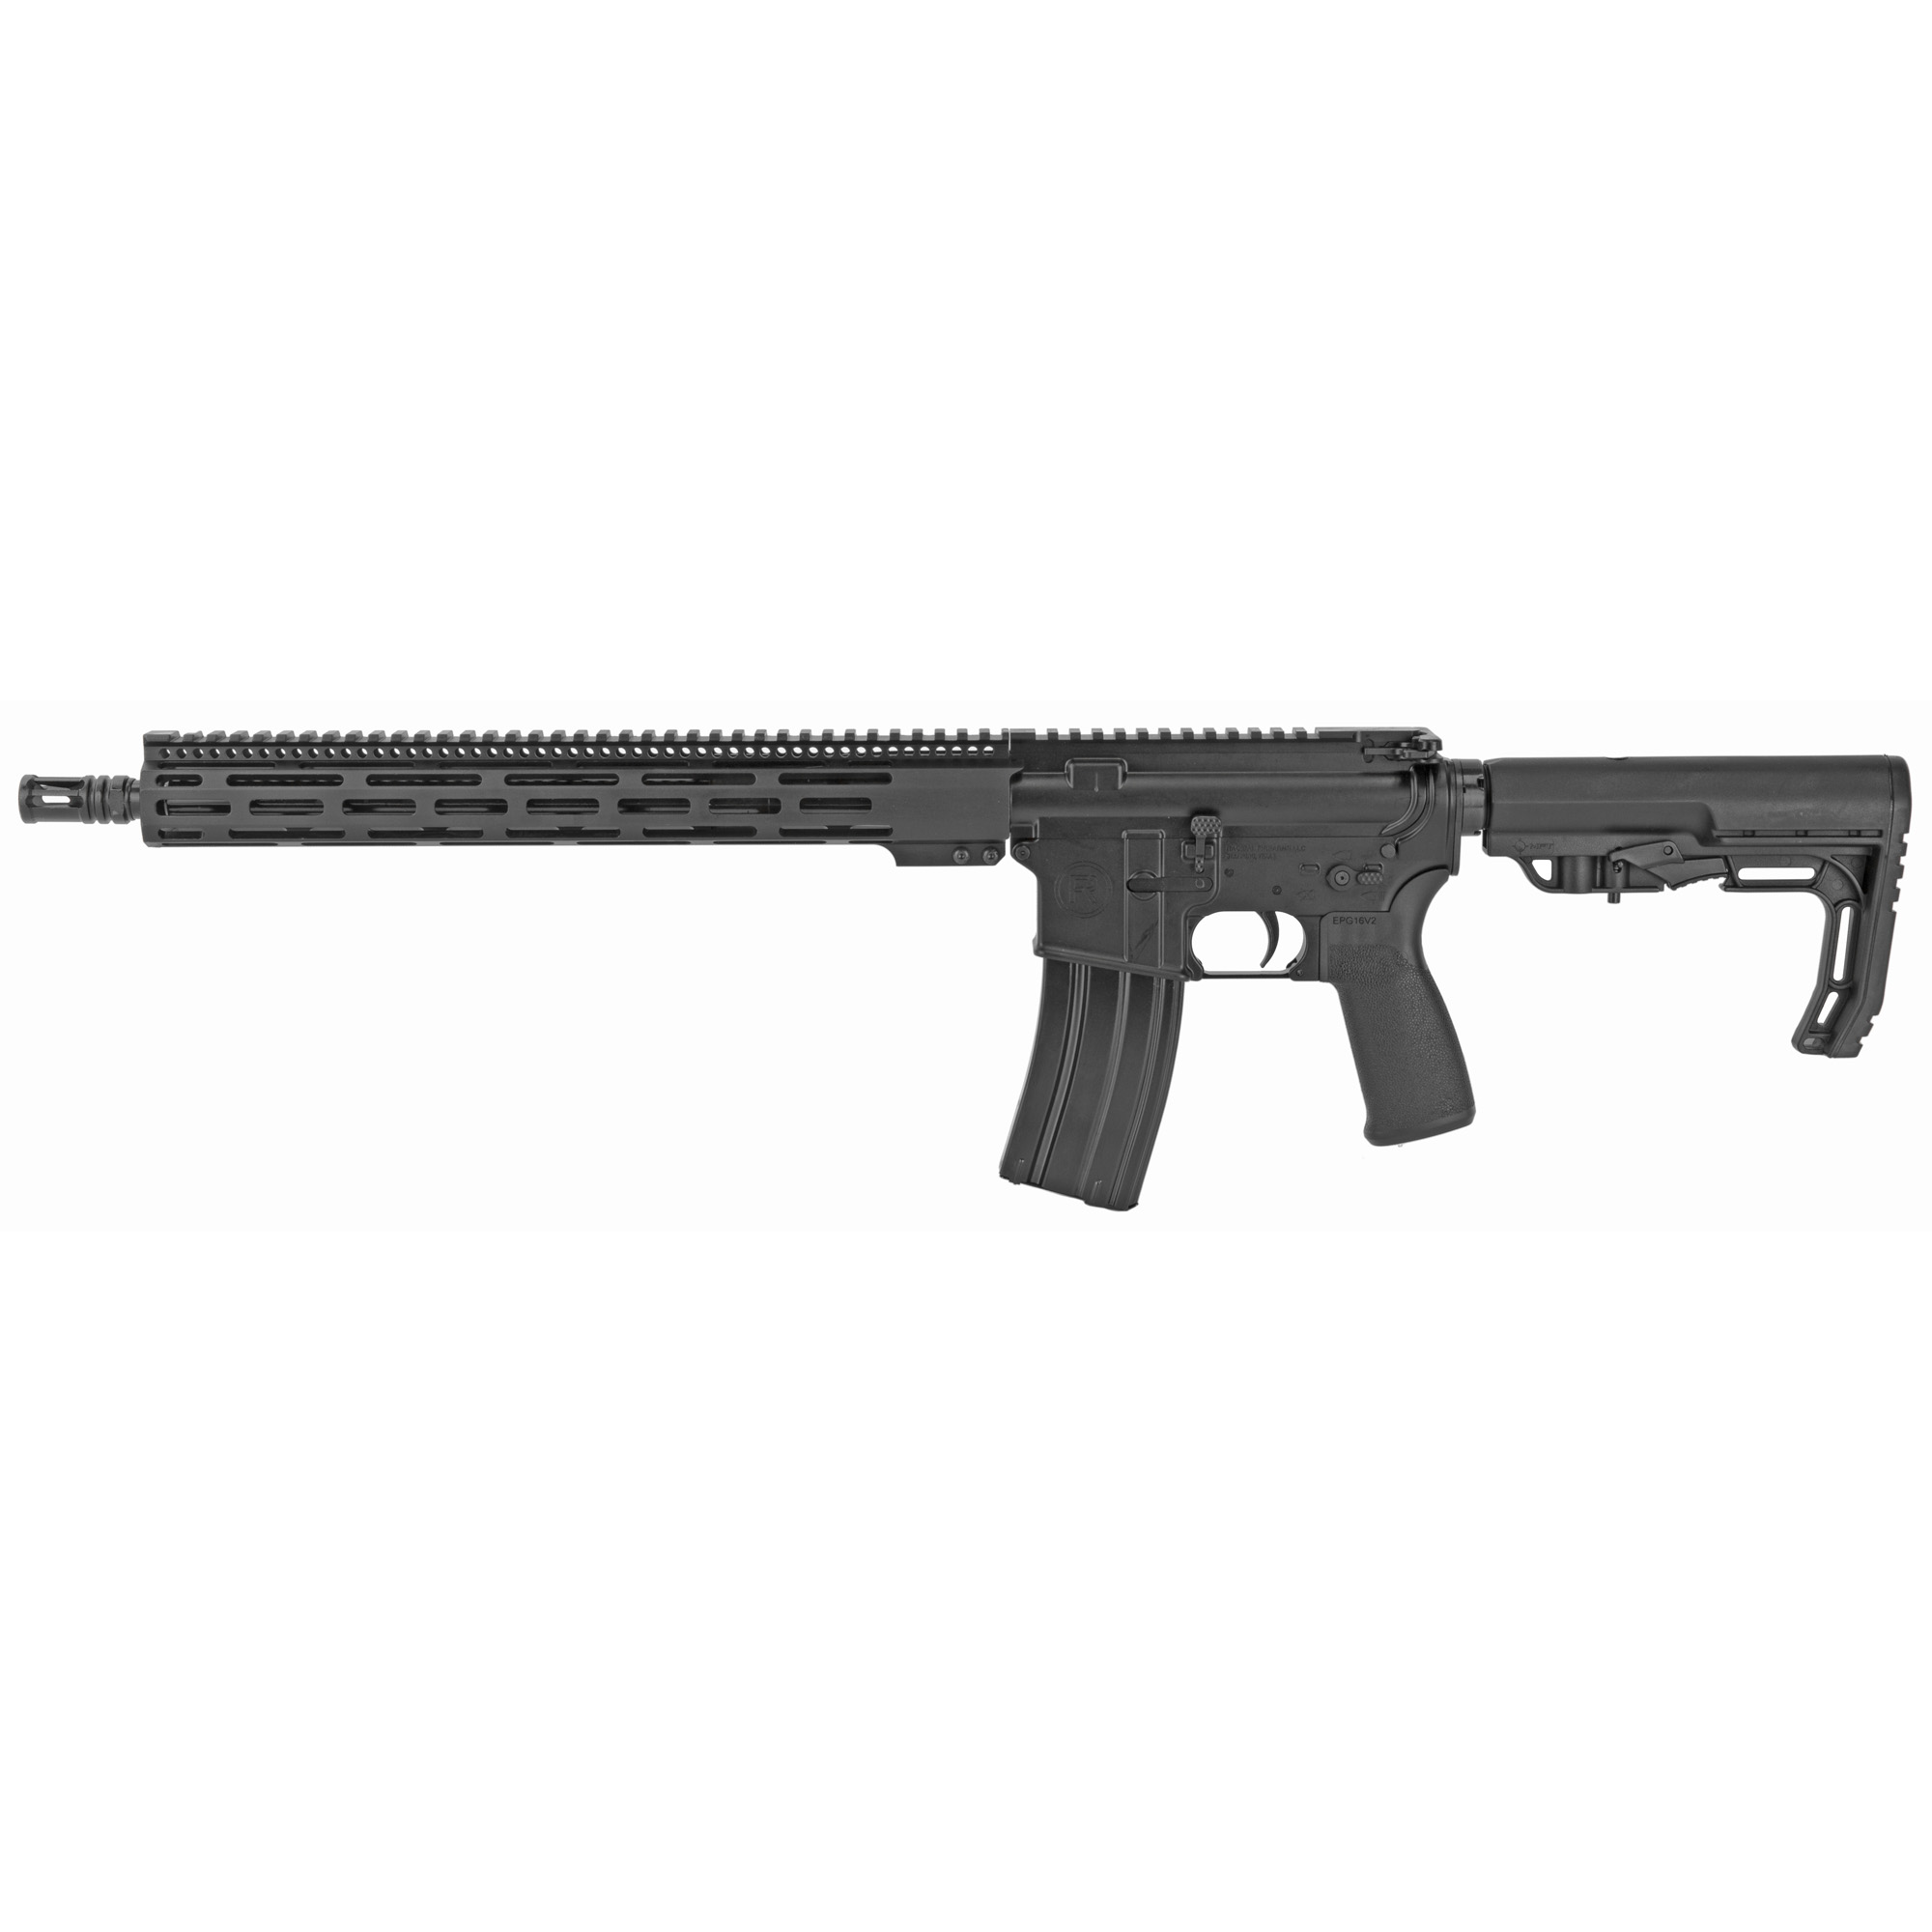 """The Radical Firearms AR uses MIL-STD Upper and lower receivers along with a free float rail system for increased accuracy"""" keeping your hands cool"""" and giving you plenty of room for accessories. Regardless if it's your first or fiftieth"""" a Radical Firearms AR rifle will not disappoint!"""